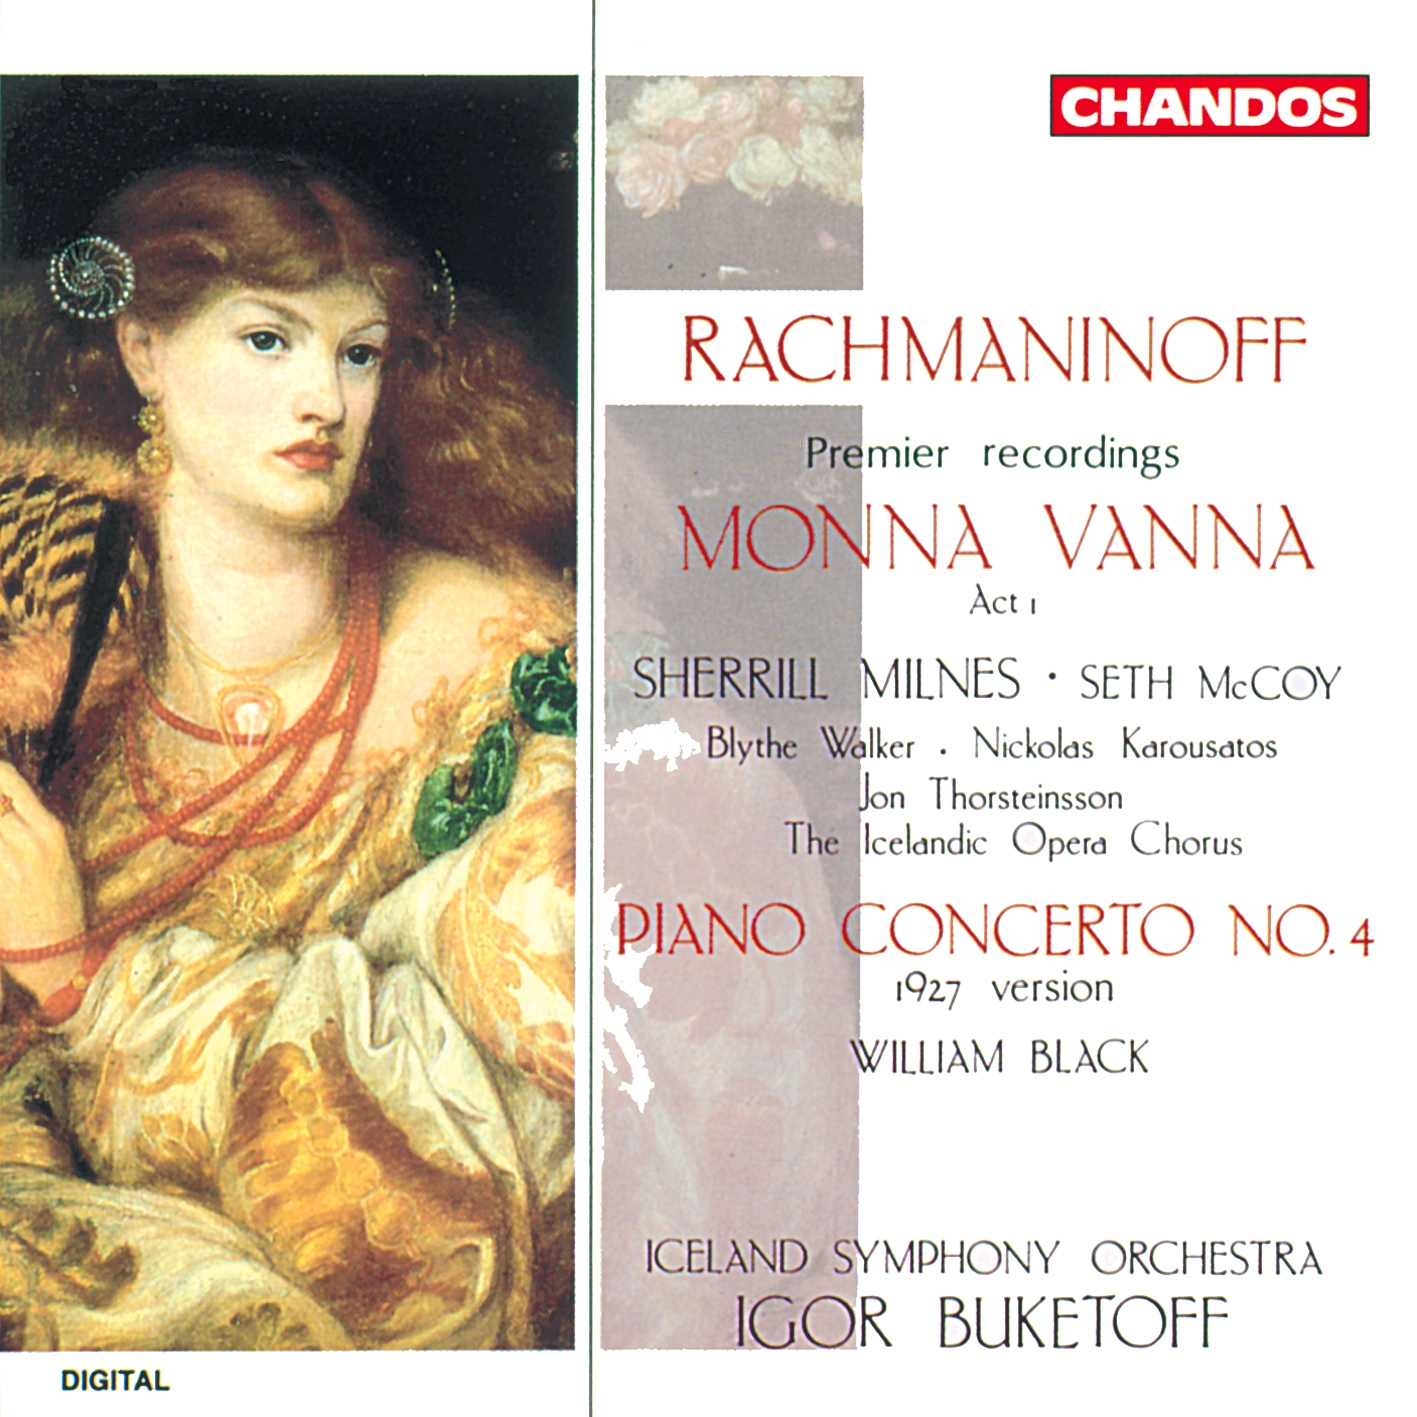 Rachmaninoff - Milnes, McCoy, Walker, Karousatos, Thorsteinsson, William Black, Igor Buketoff Monna Vanna / Piano Concerto No. 4 CD